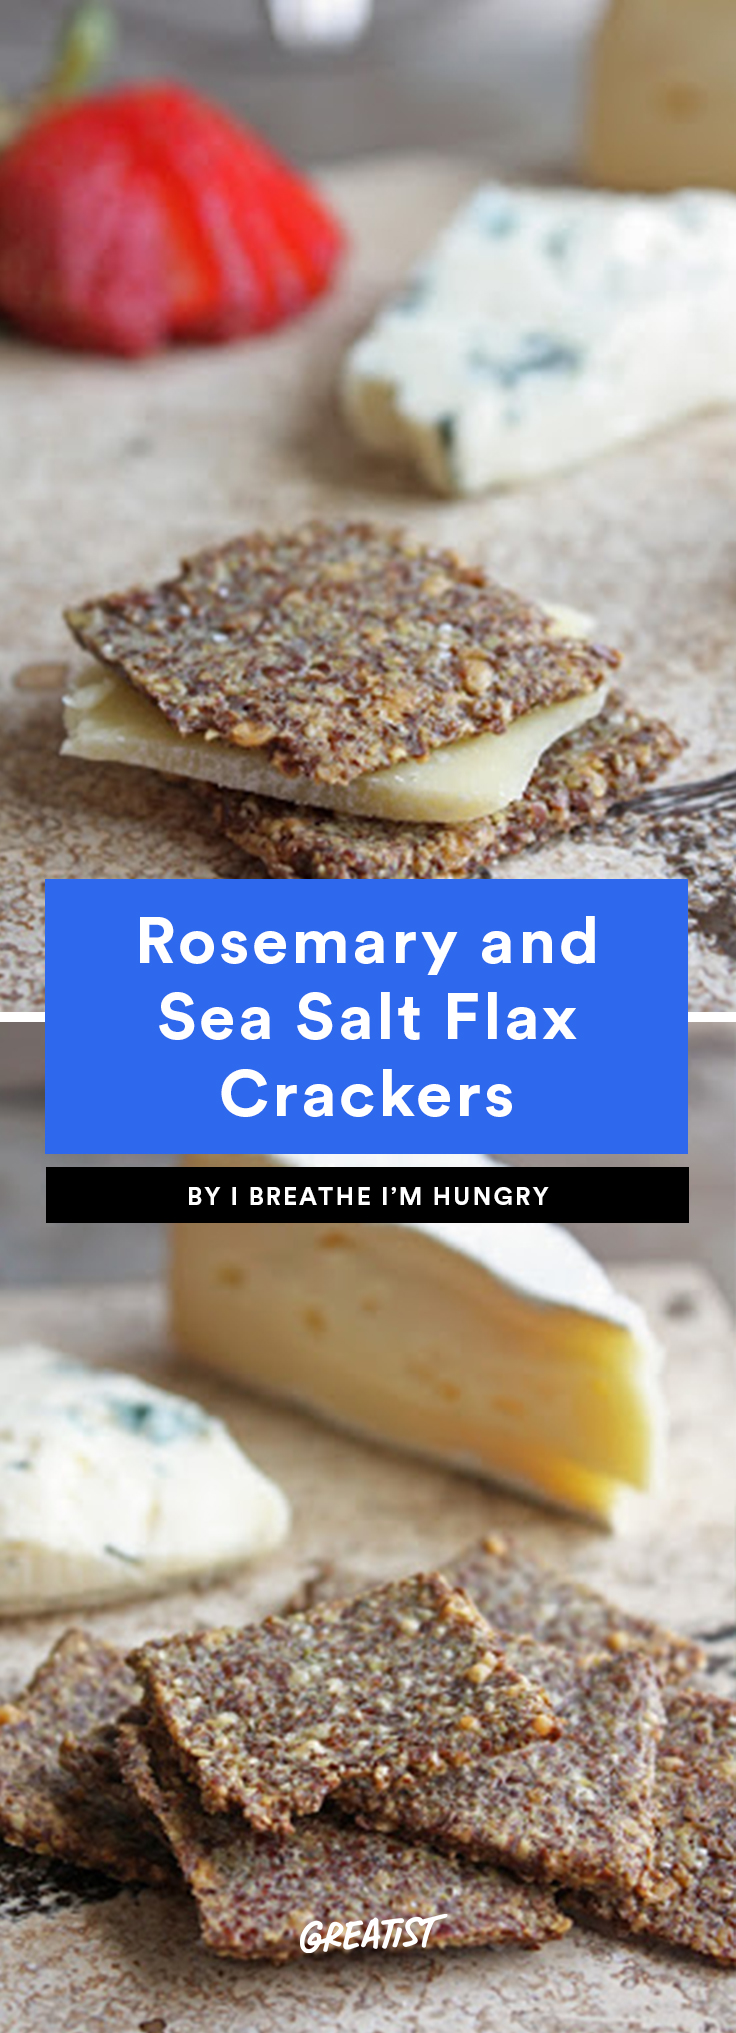 Easy Keto Recipes: 8 Low-Carb Crackers to Make at Home